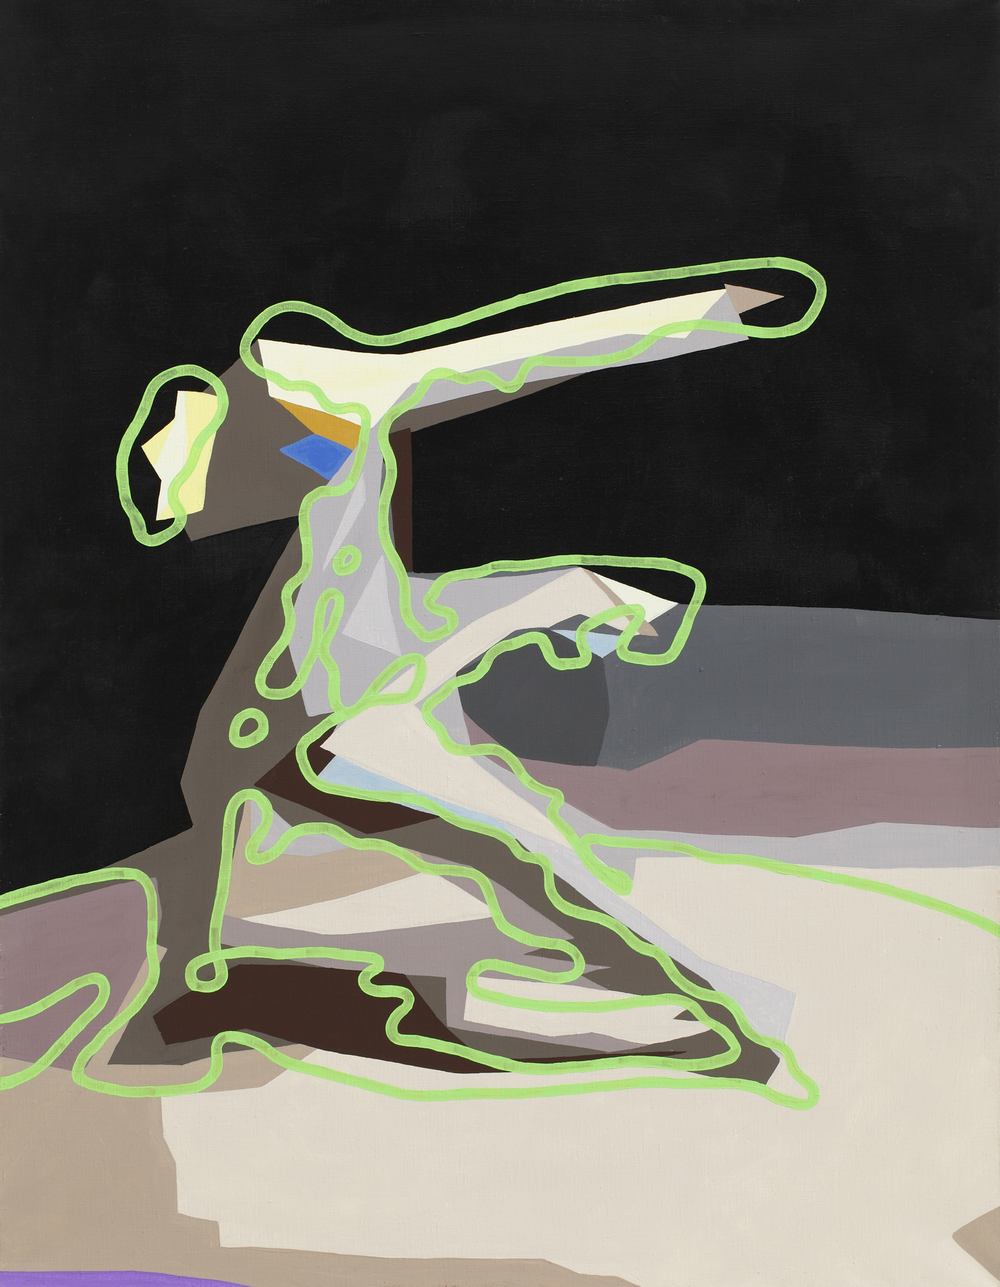 Sixstep, 2004, acrylic on canvas, 125 x 105 cm